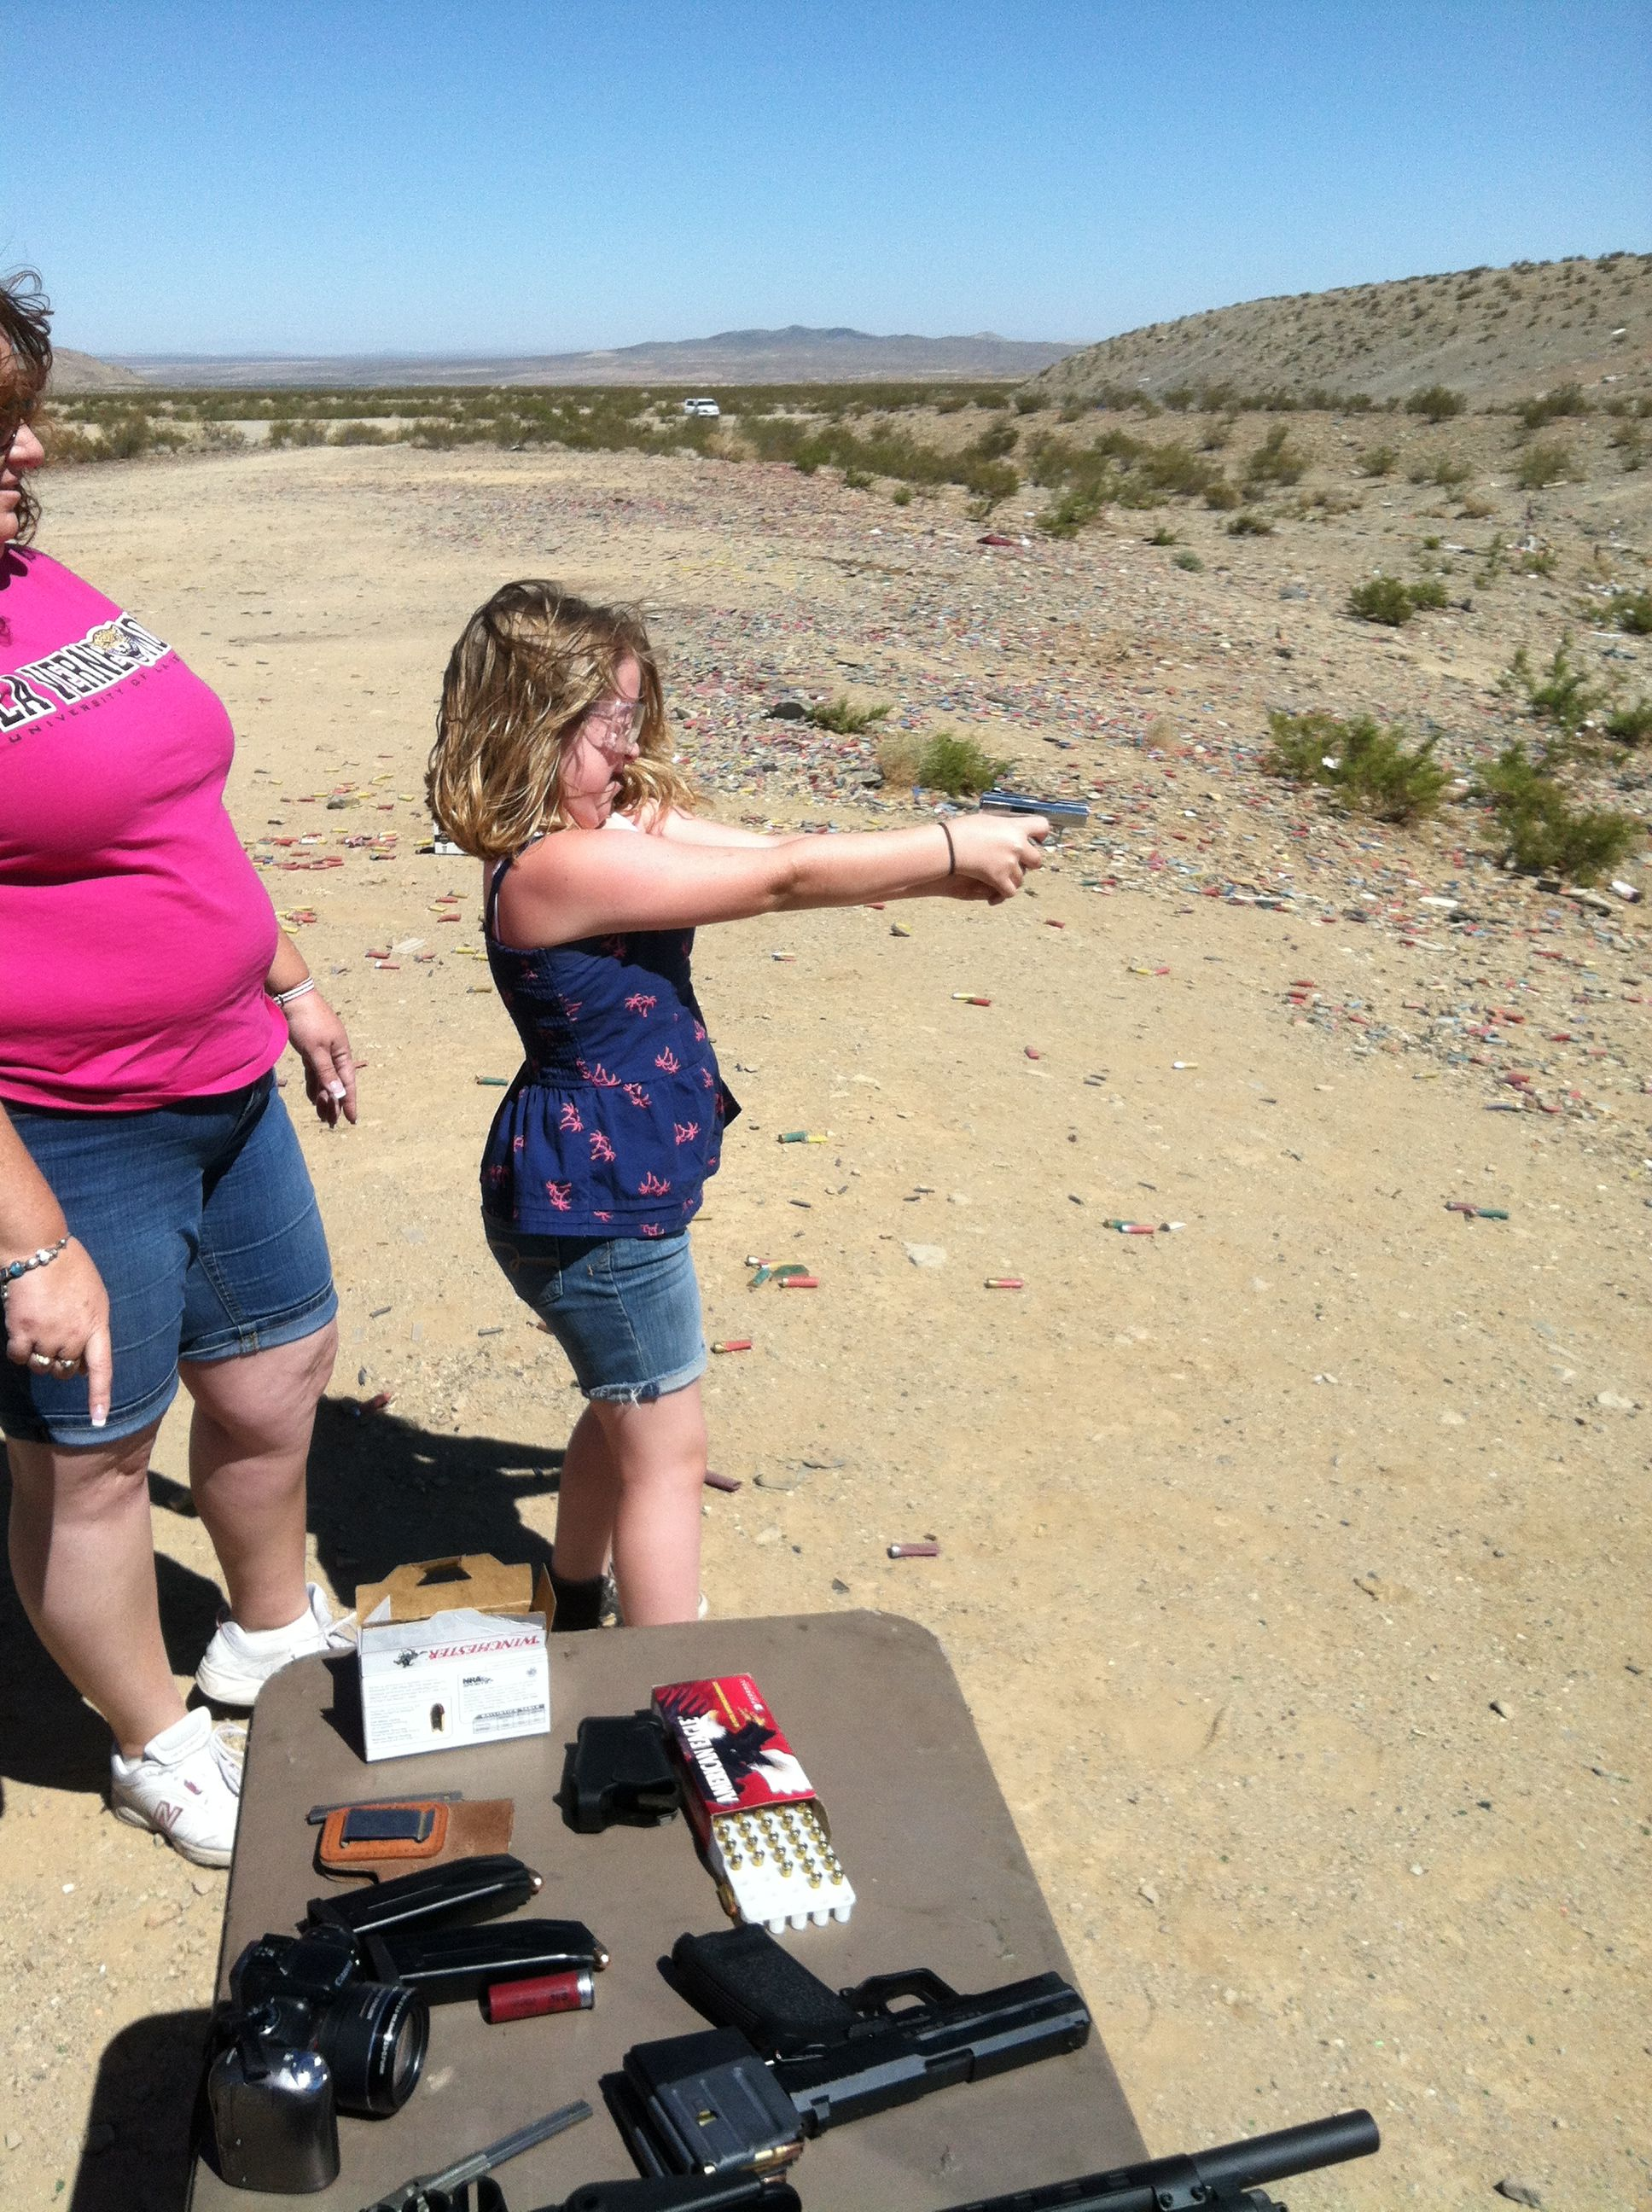 At hodge road, Barstow calif. my little reagan shooting 25